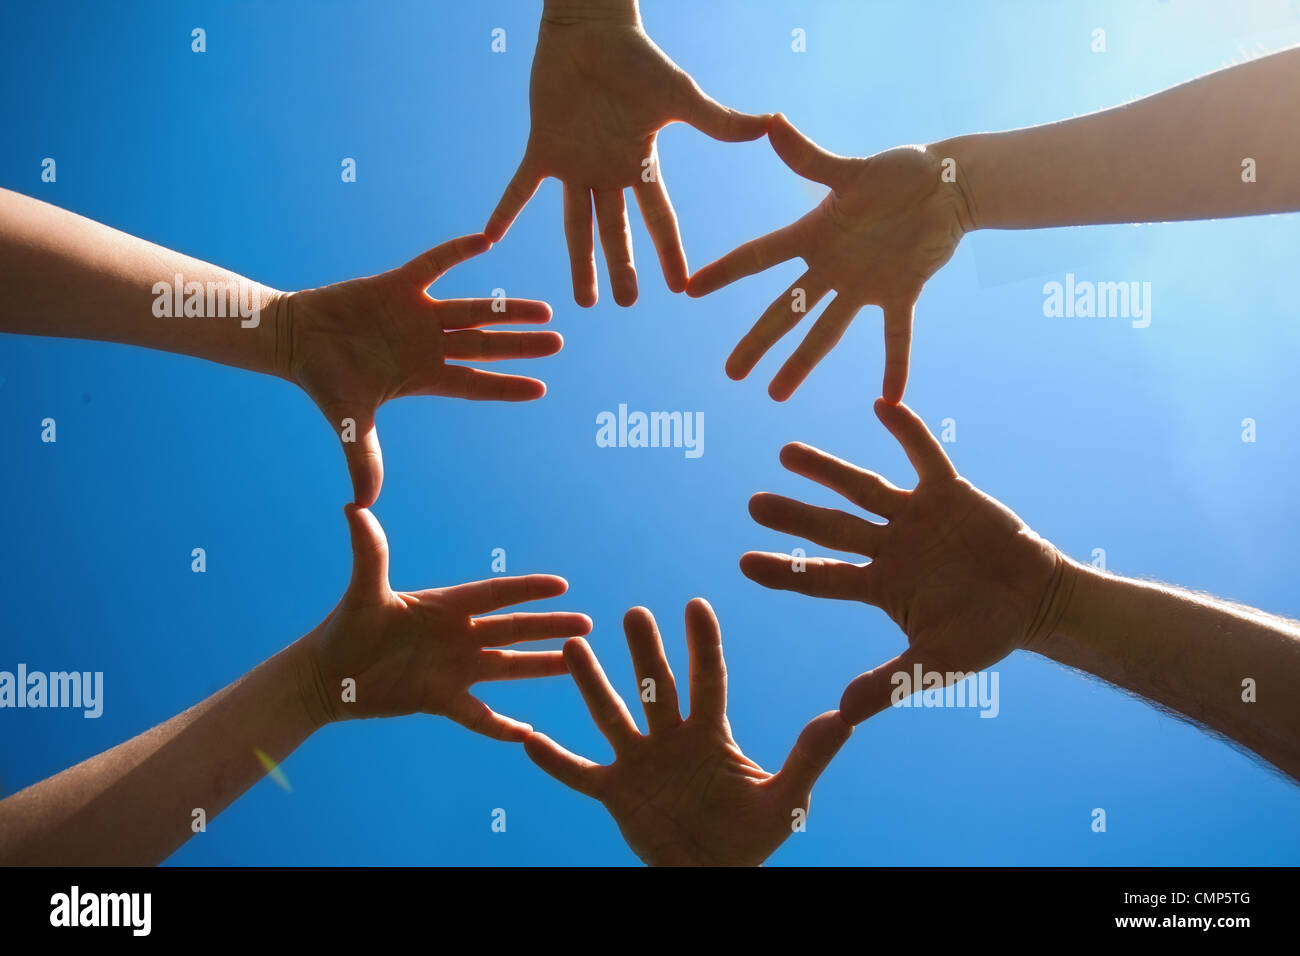 sky and hands - Stock Image